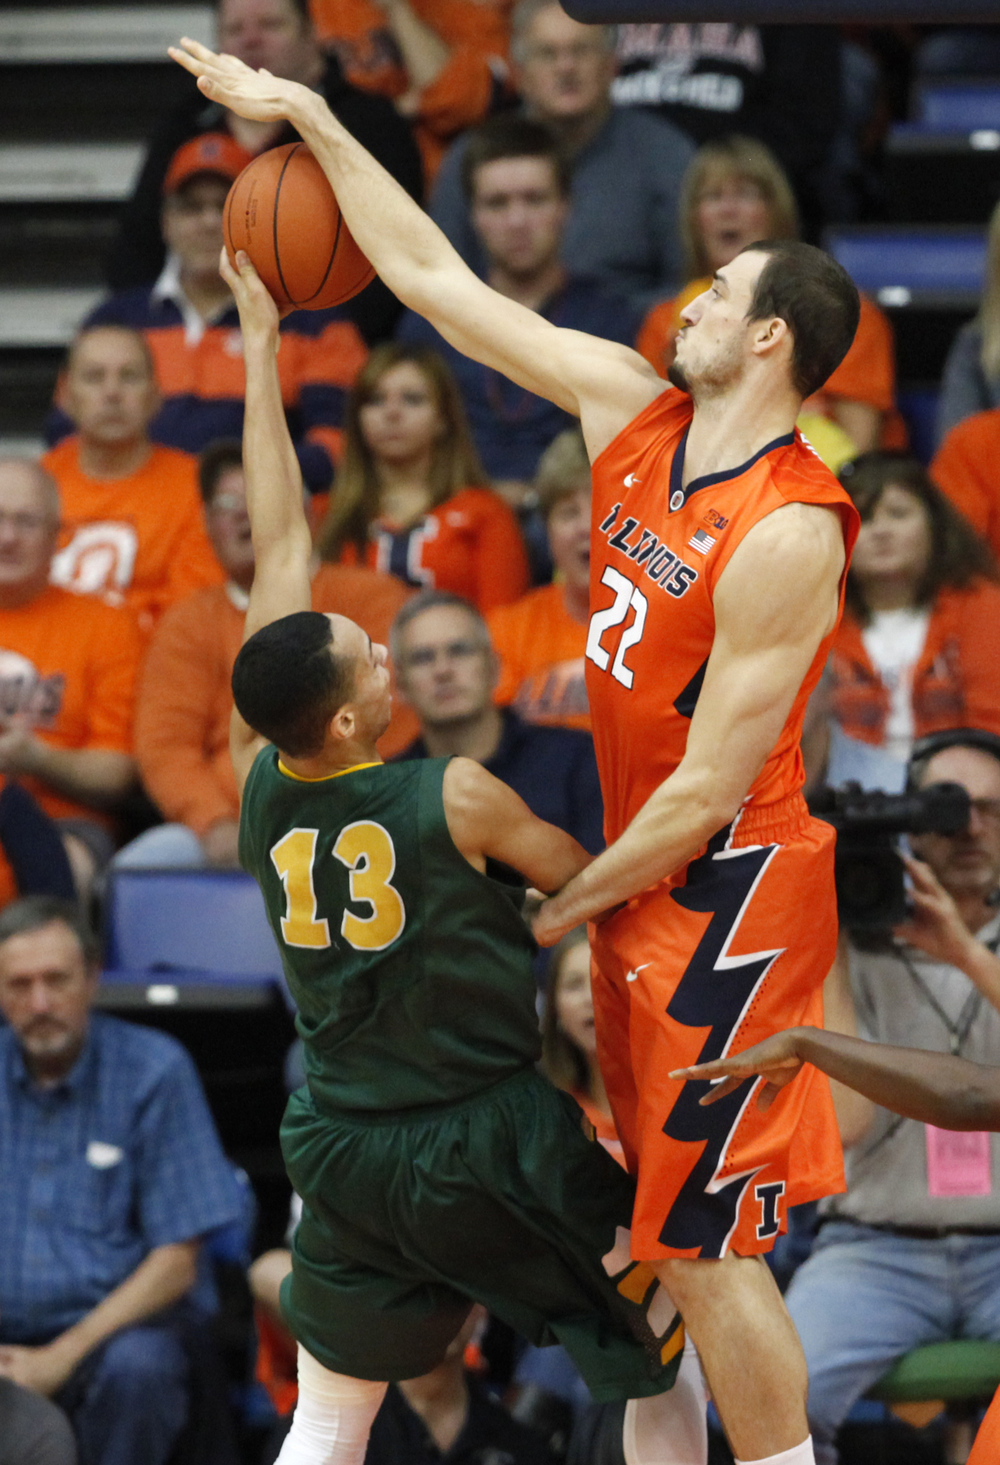 University of Illinois' Maverick Morgan (22) blocks a shot from North Dakota State University's Khy Kabellis (13) during the first half at the Prairie Capital Convention Center, Sunday, Nov. 15, 2015, in Springfield, Ill. Justin L. Fowler/The State Journal-Register